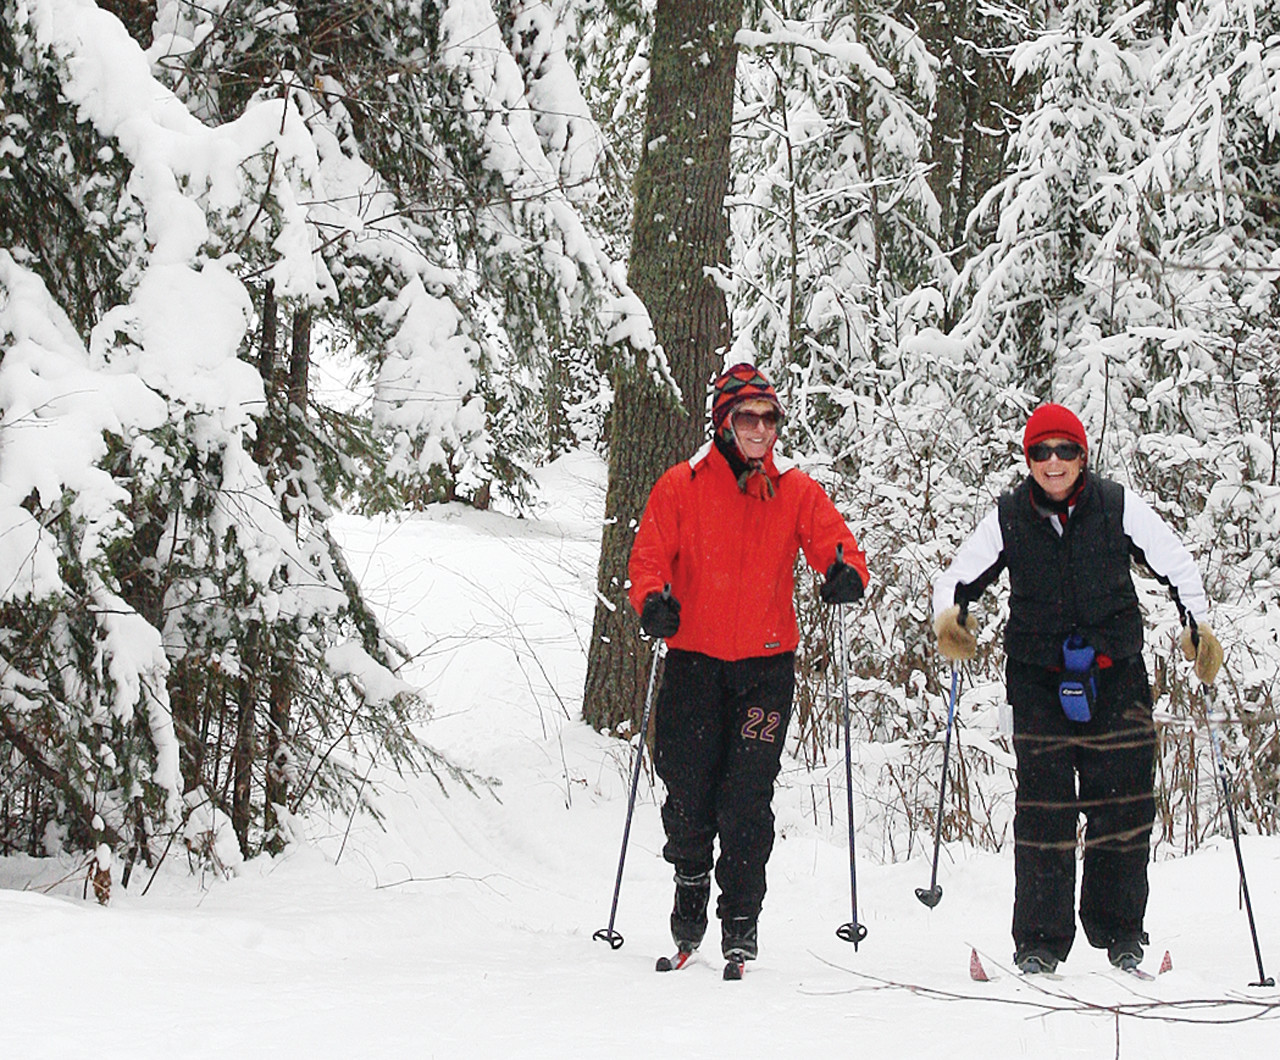 You probably shouldn't put away your cross country skis just yet, but a new study points to a major drop in winter recreation in the Upper Midwest and elsewhere in the U.S. over the next few decades.